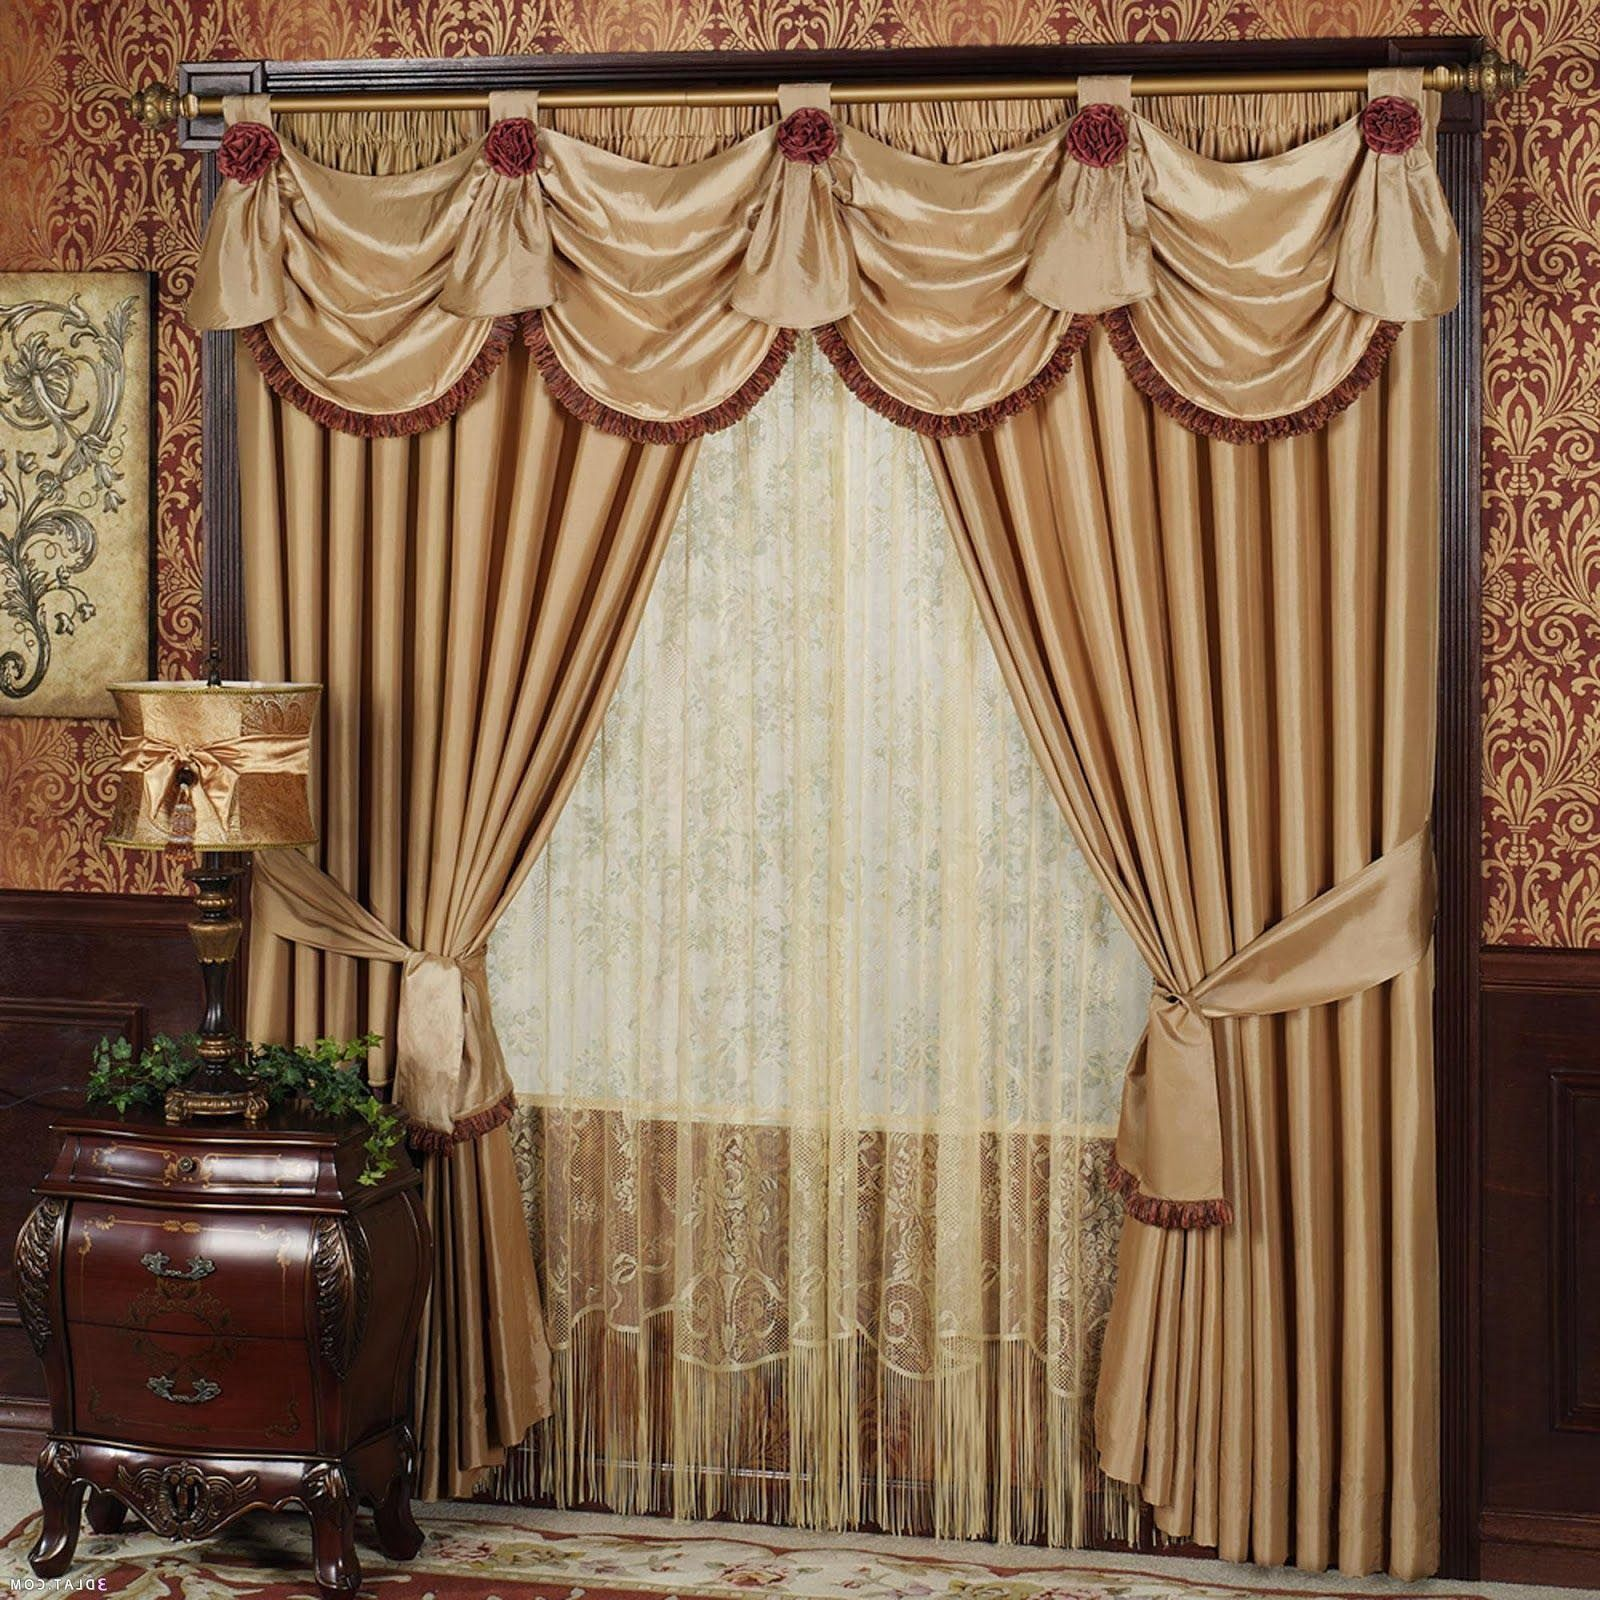 Living Room Drapes With Valances